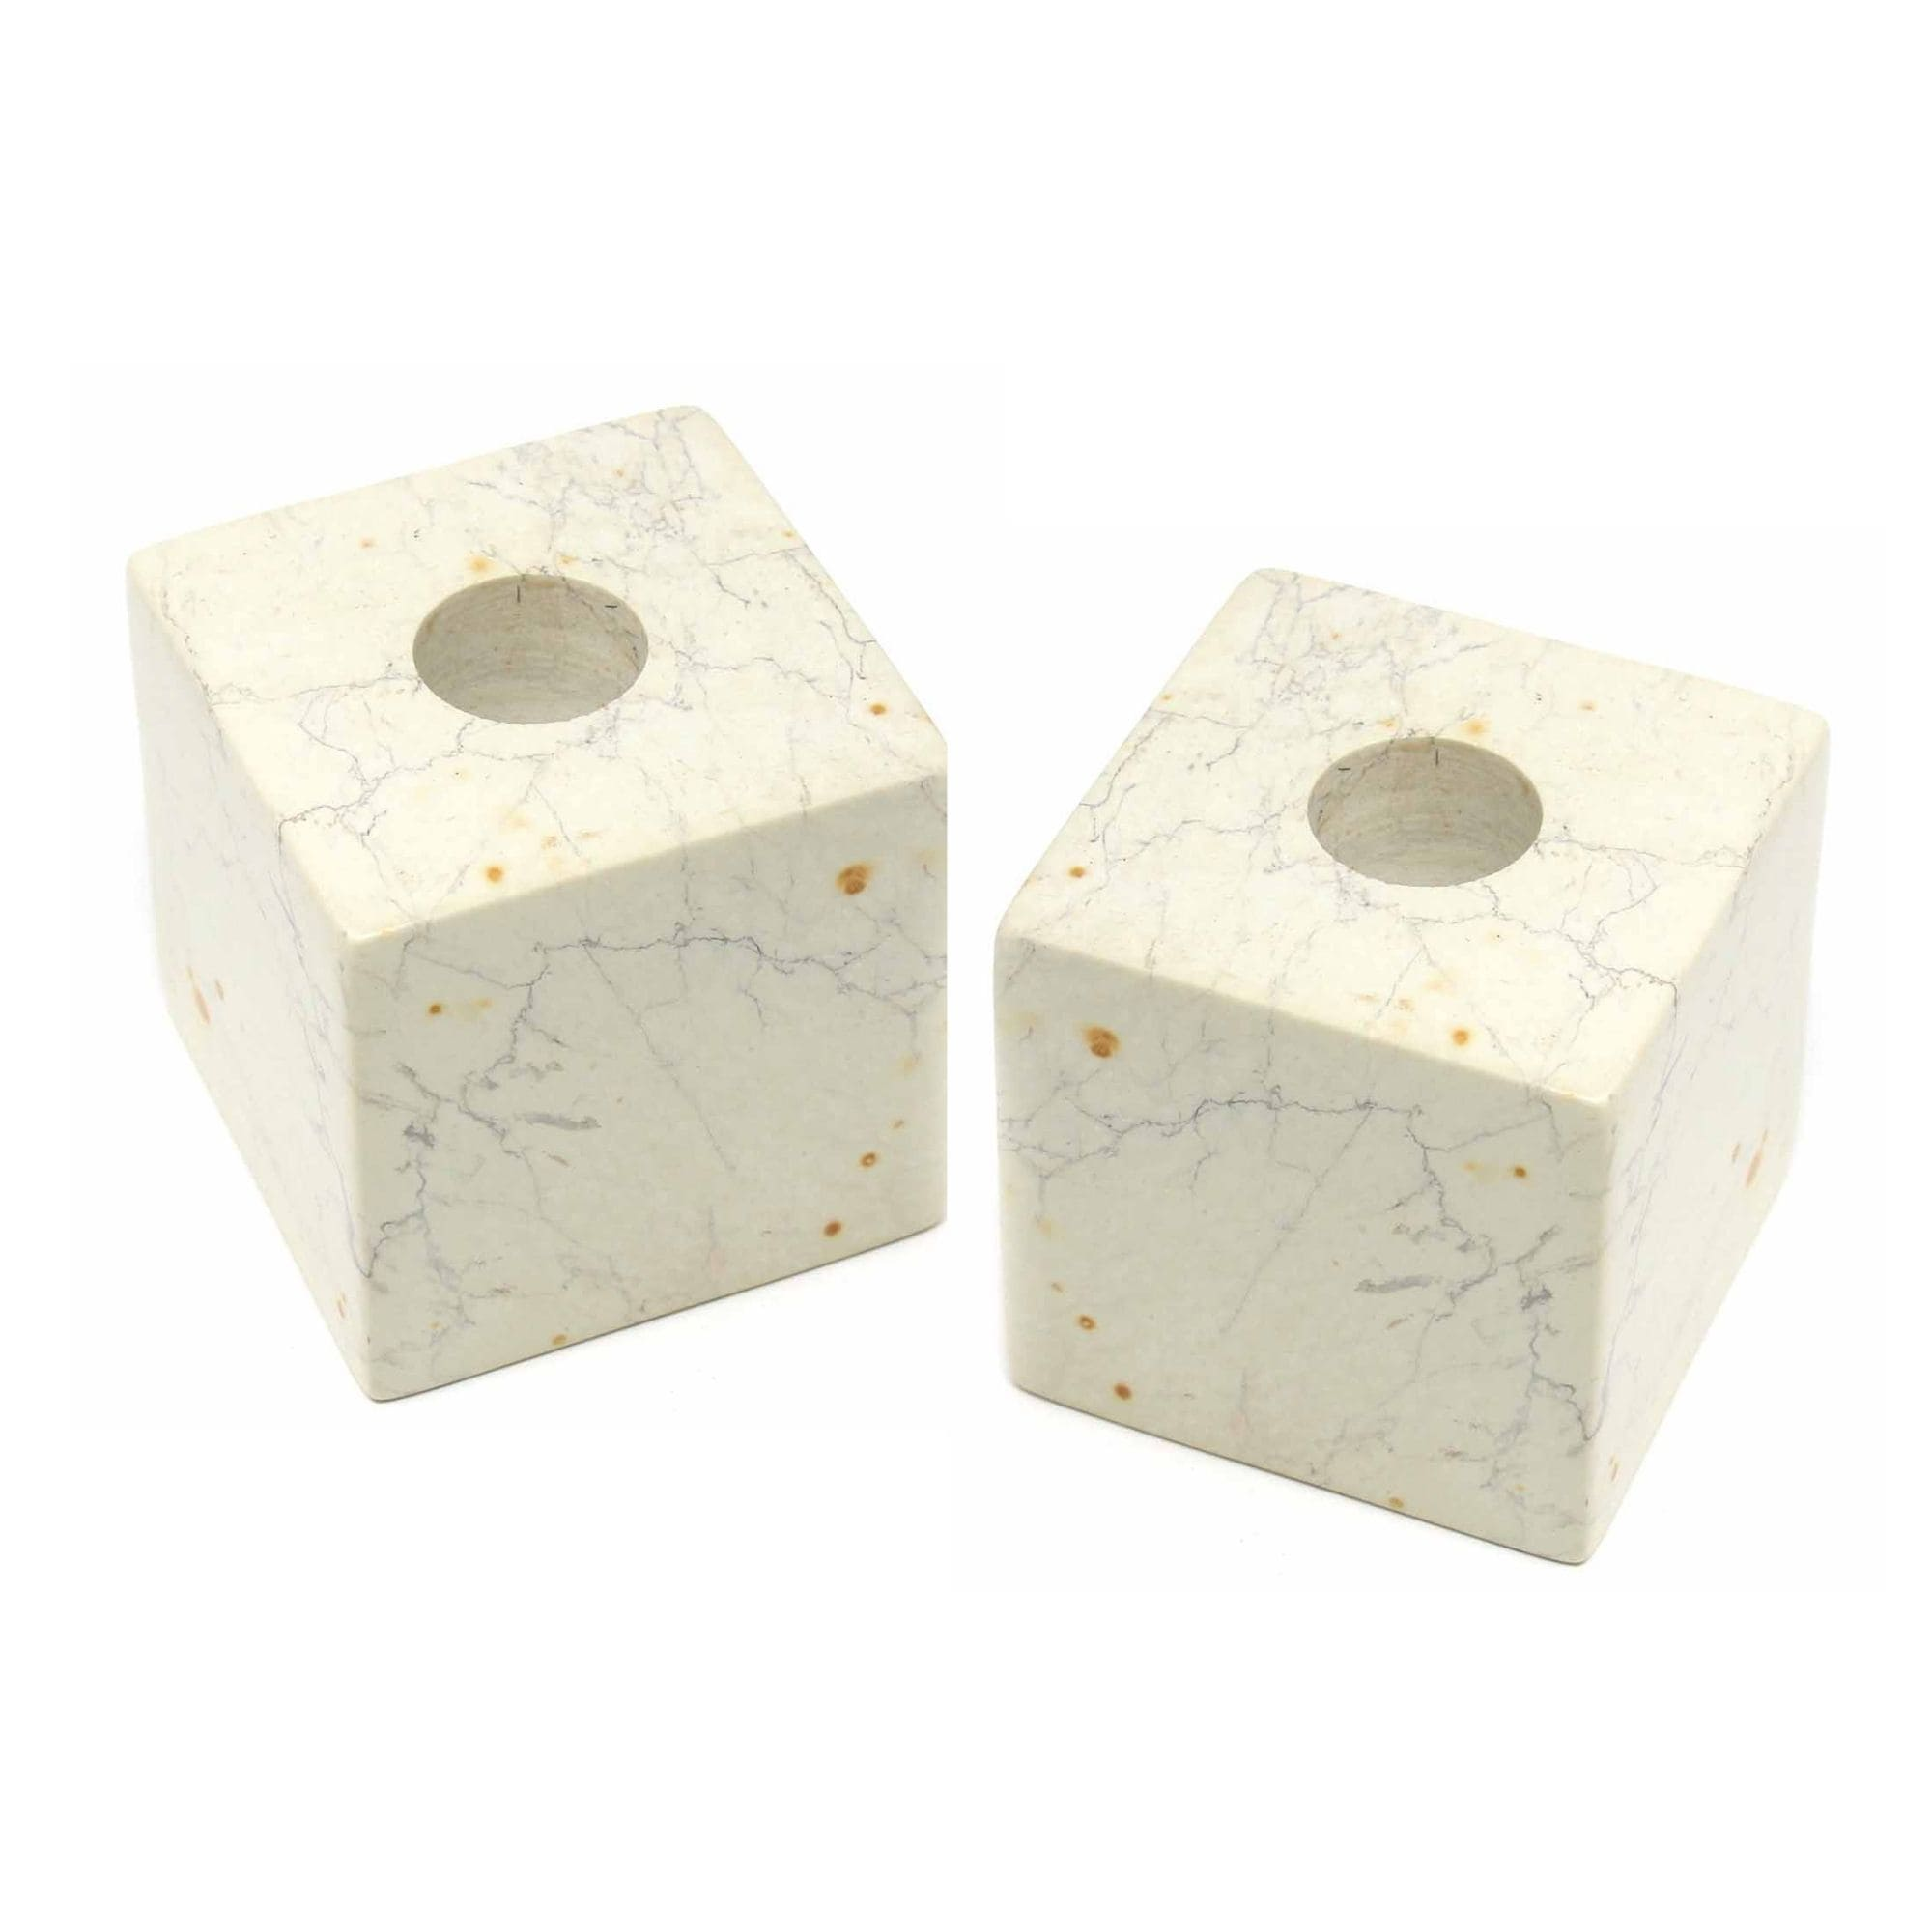 Cube Soapstone Candle Holders, Set of 2